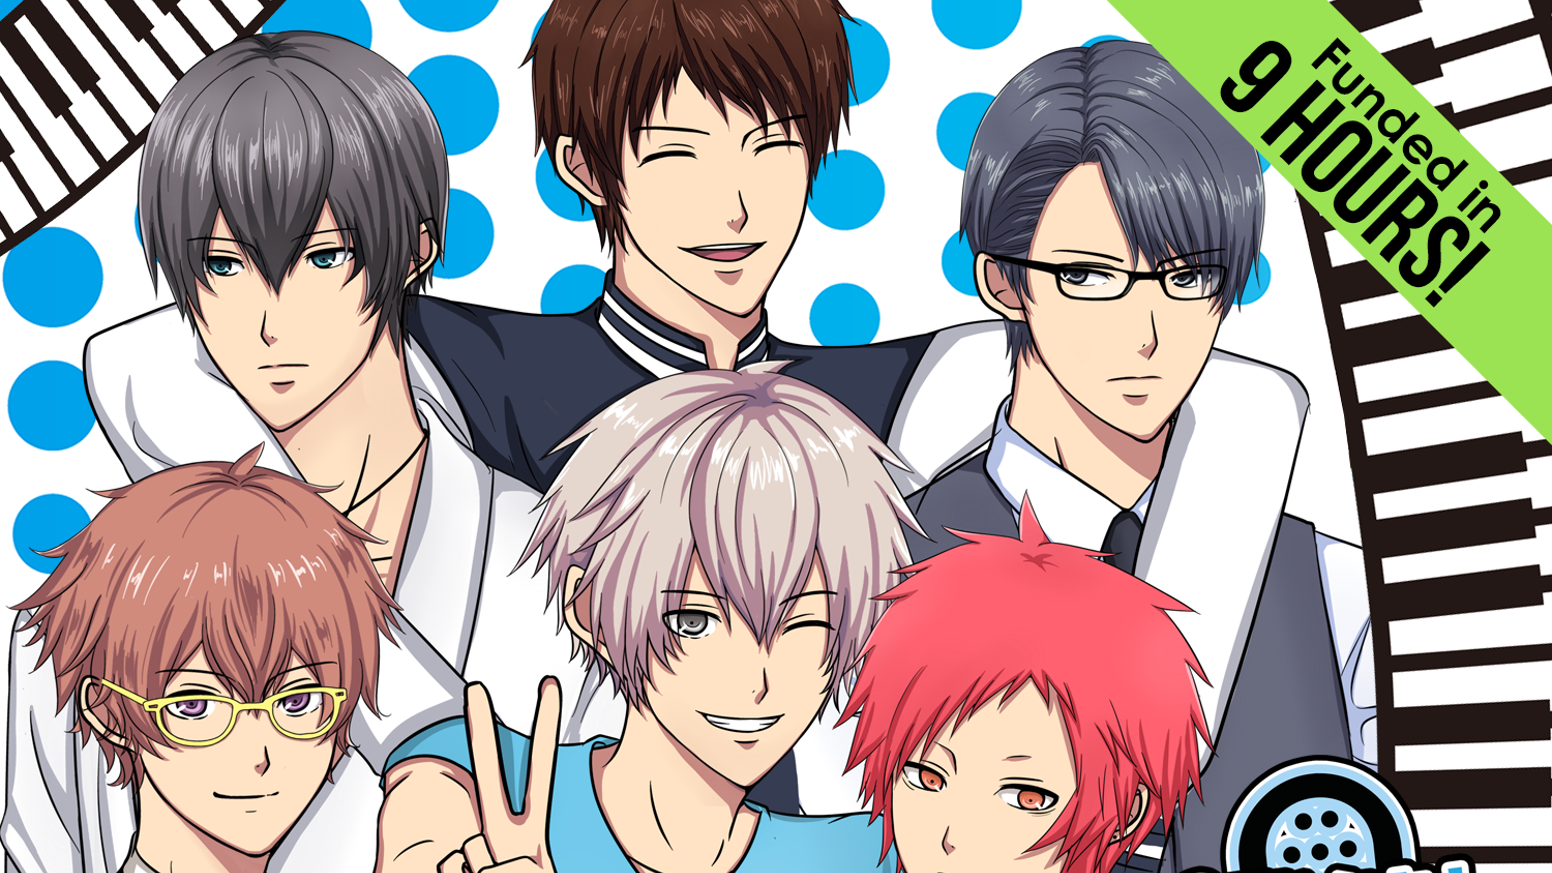 A BL dating sim with reversible roles. Explore town, enjoy stories with lots of CGs, pursues 5+ guys and build career as a voice actor.